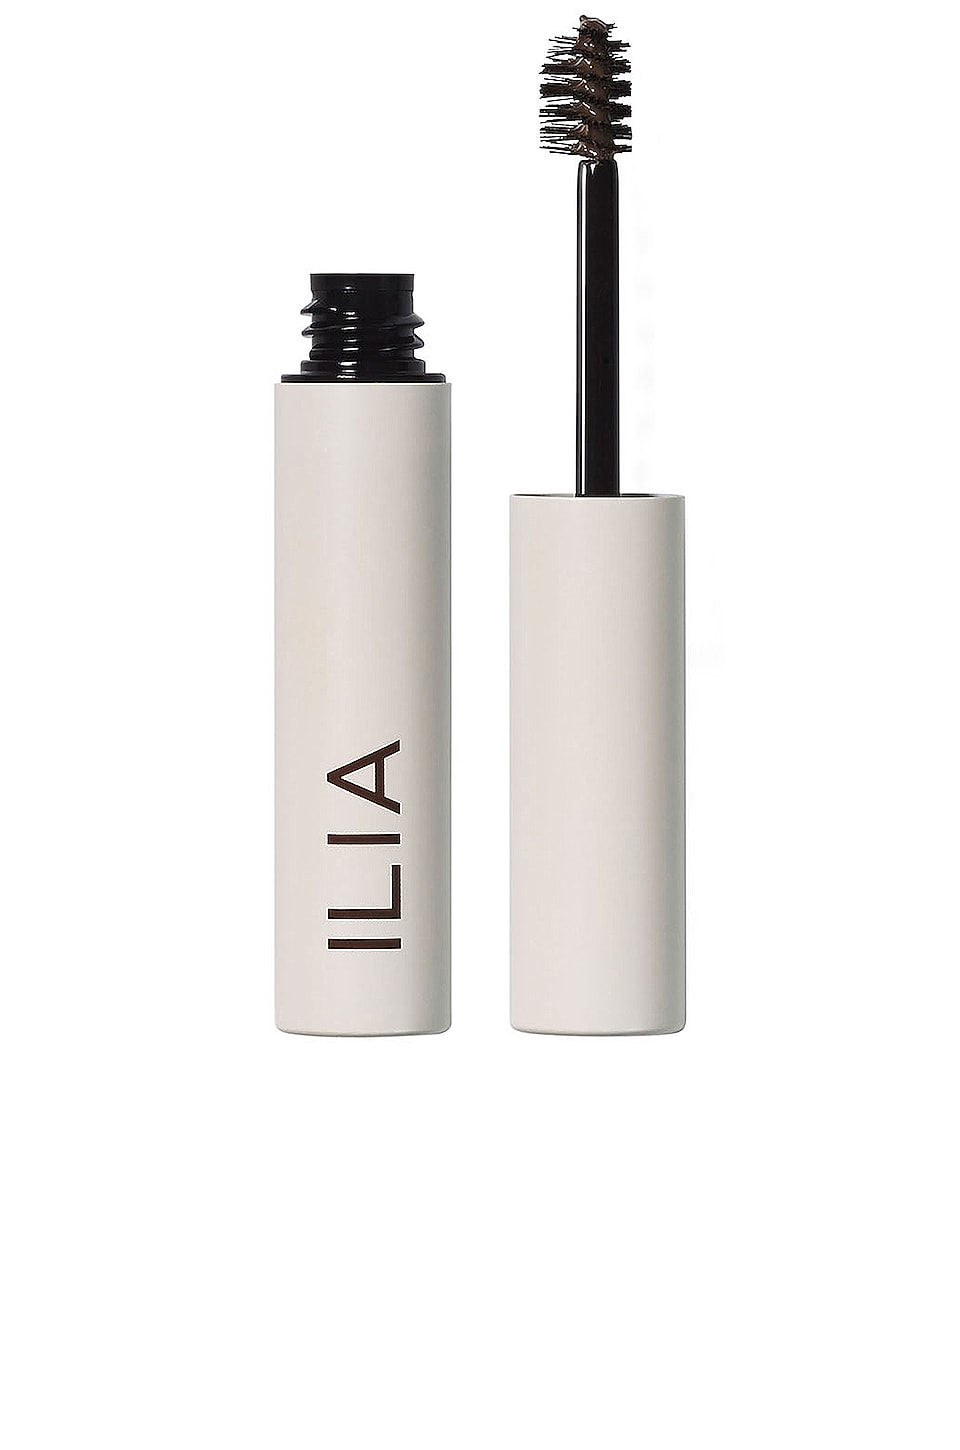 Ilia Essential Brow Natural Volumizing Brow Gel in Dark Brown